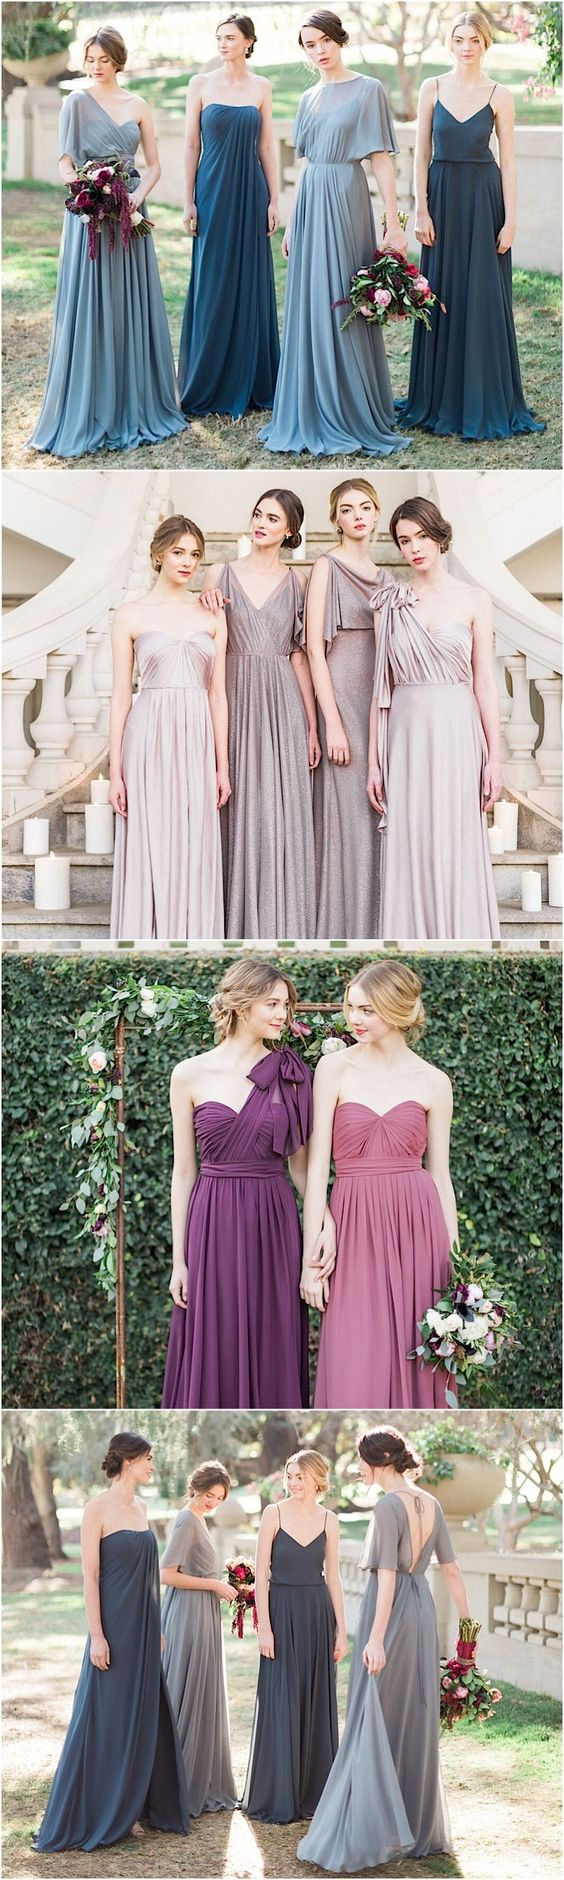 Most popular bridesmaid dress style